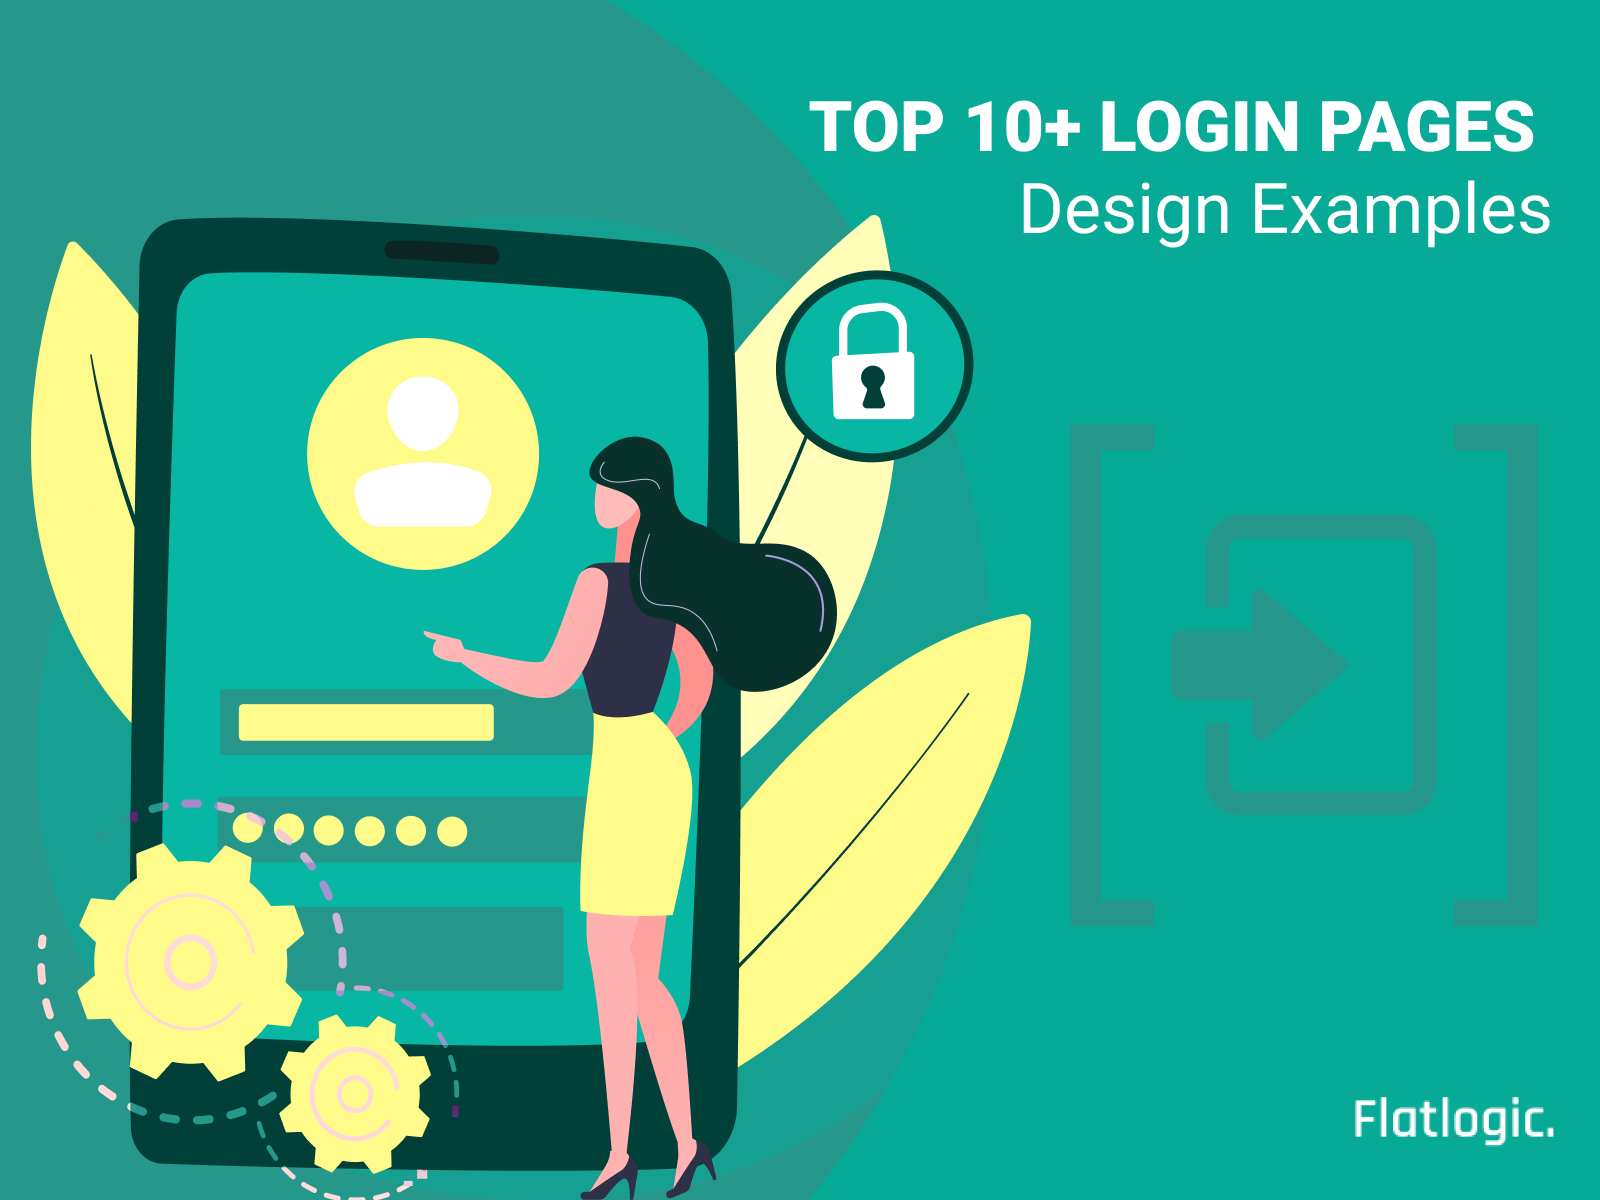 Top 13+ Login Pages Design Examples